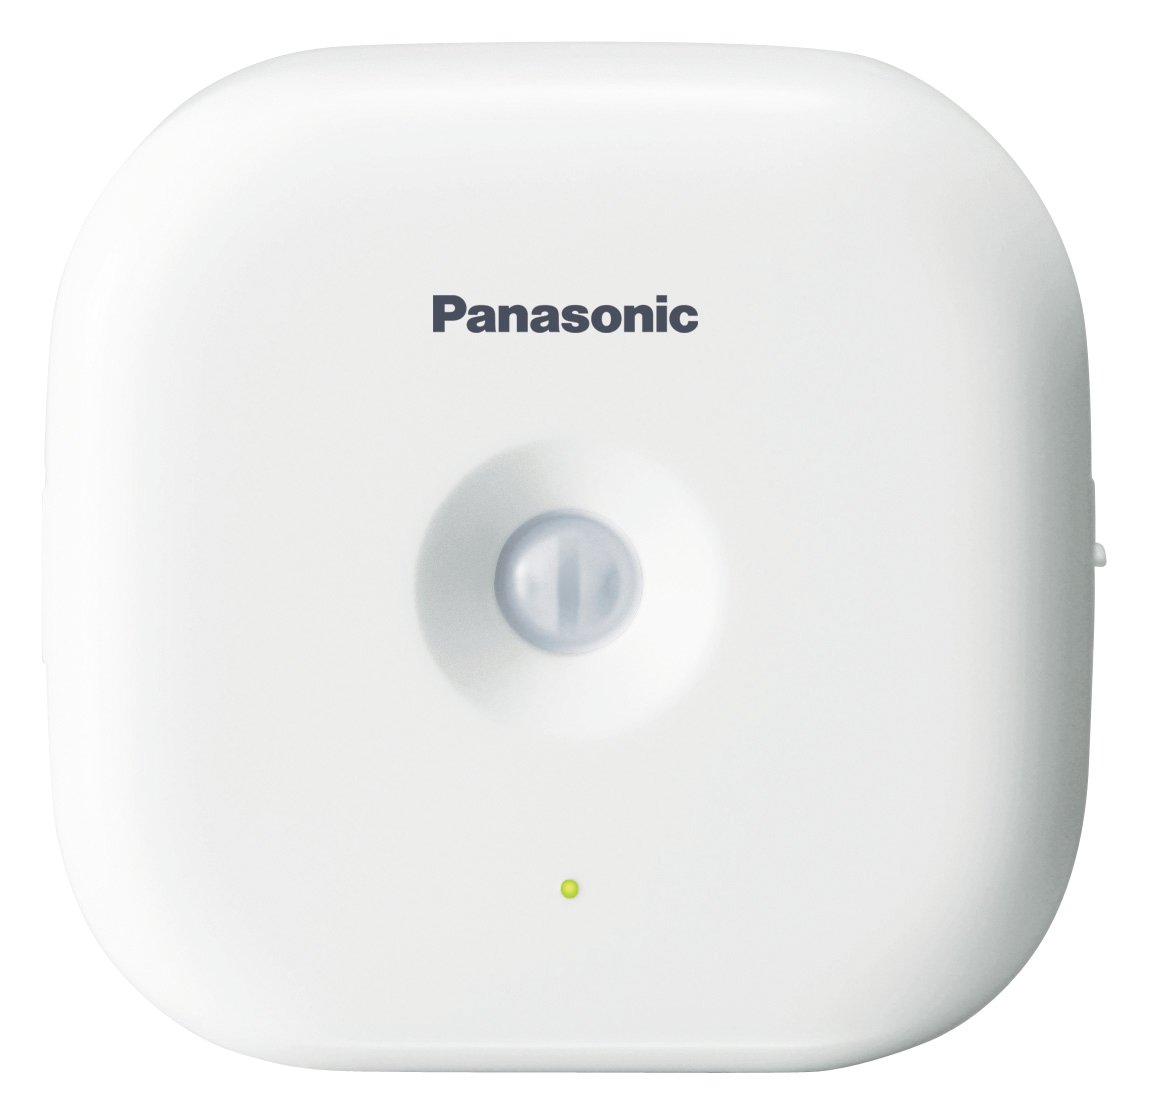 Panasonic KX-HNS102W Wireless Motion Sensor for Smart Home Monitoring System (White)